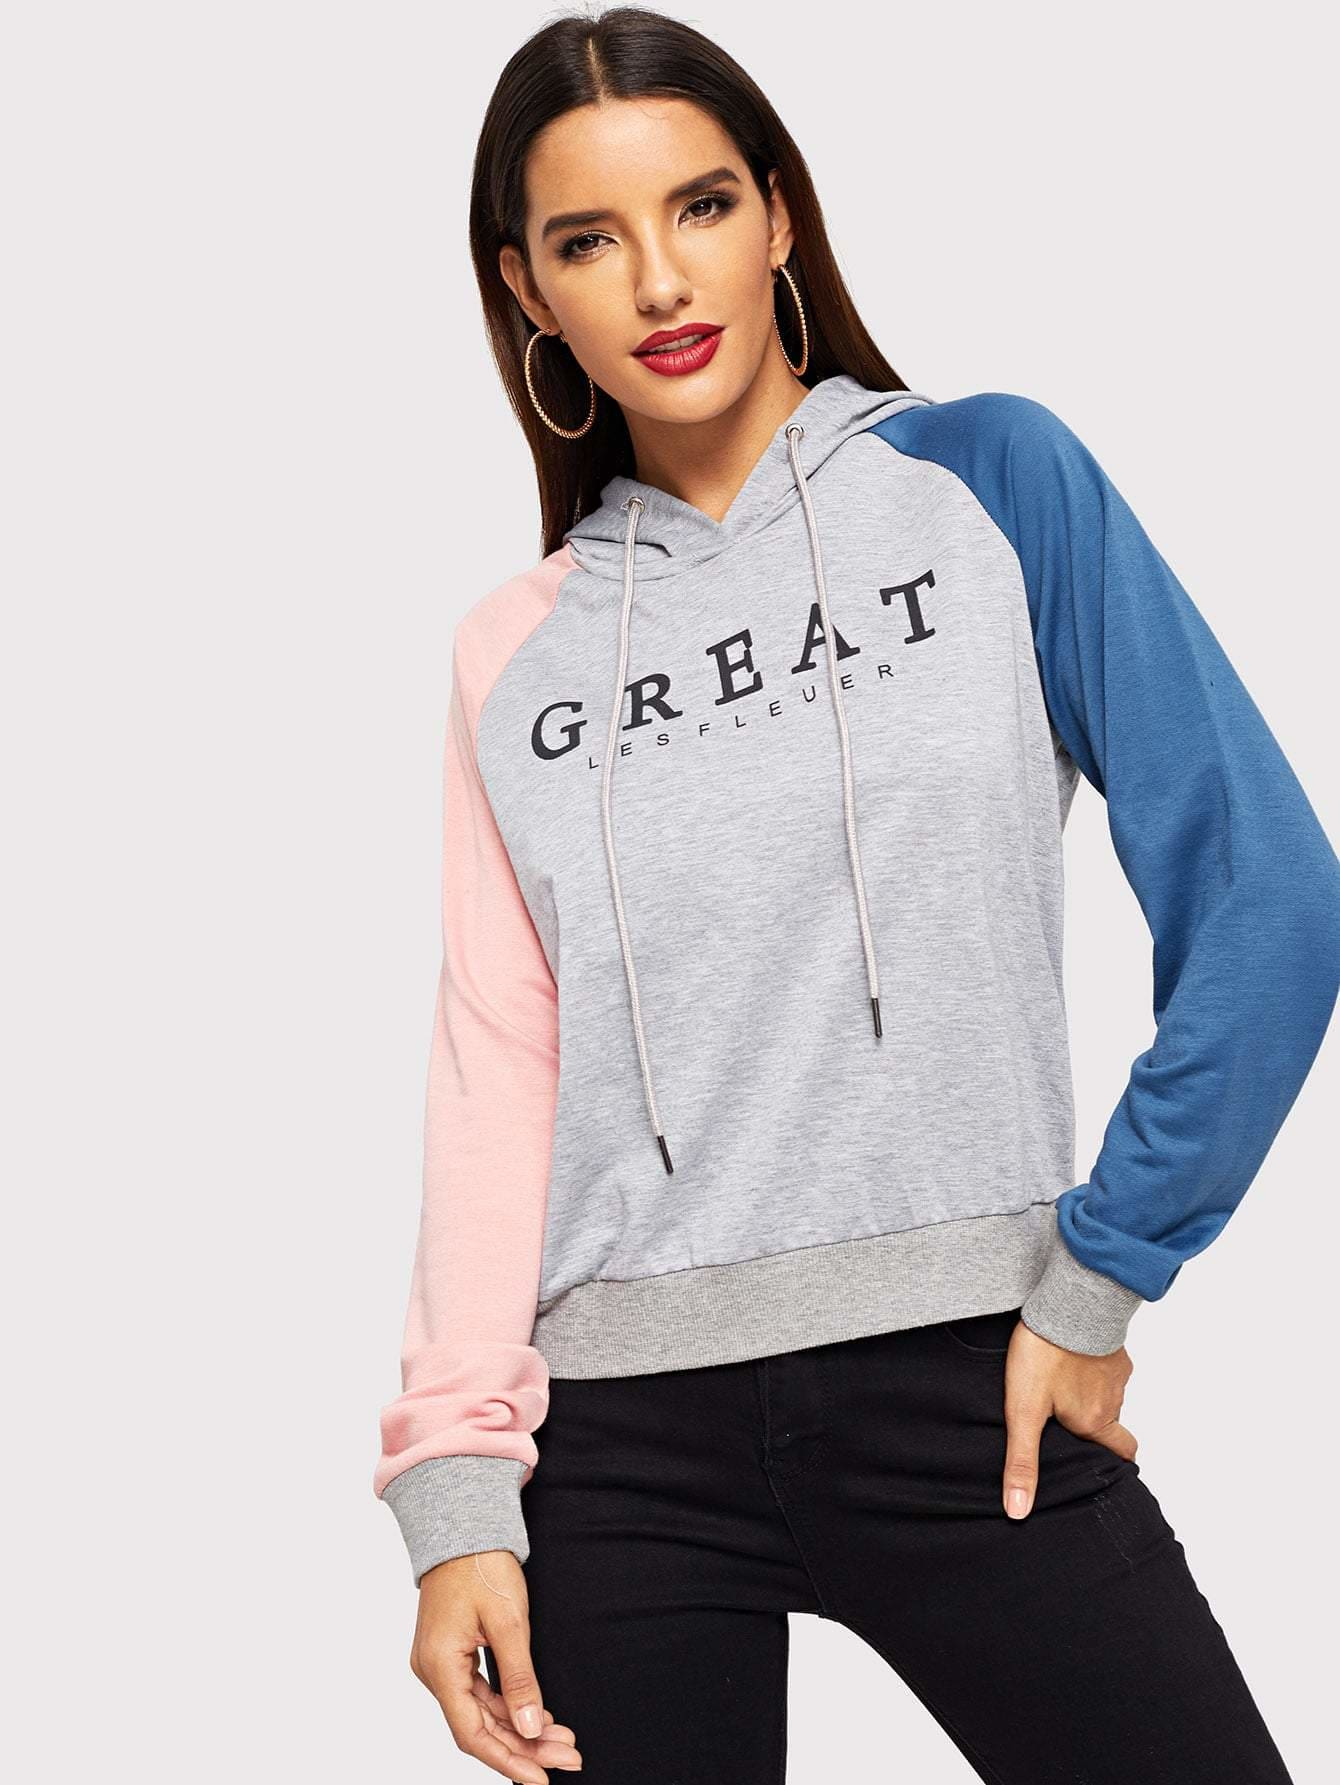 Drawstring Color Block Letter Hoodie - Gym Tops